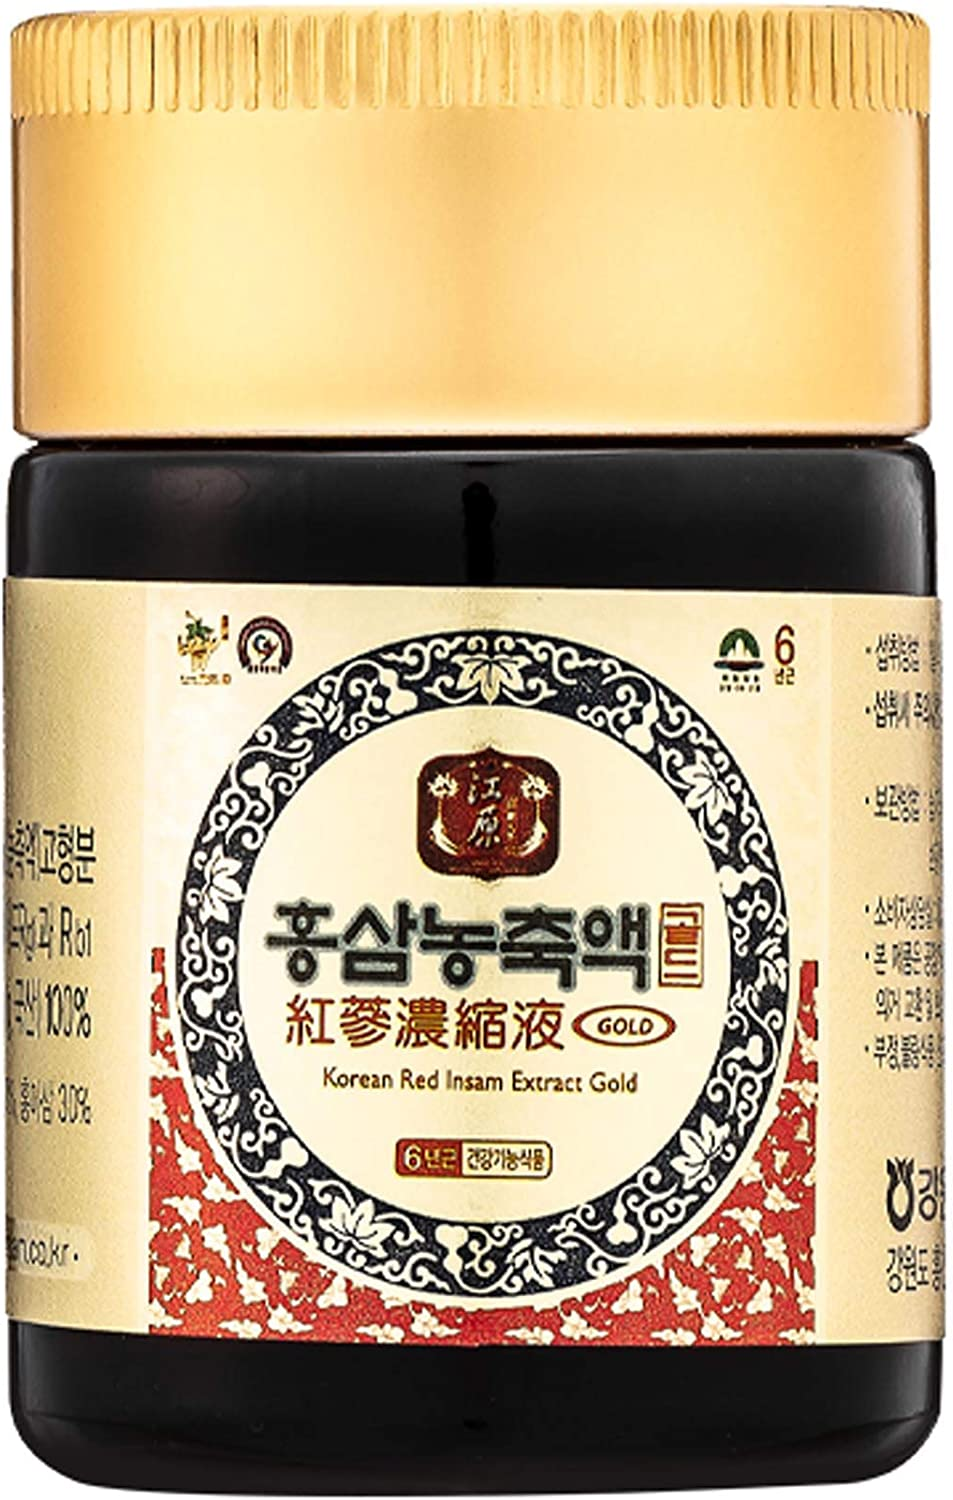 Gangwoninsam Korean Red Ginseng Extract Gold 6 Year Old Red Ginseng Extract 100 , Korean Health Food, 1.76 fl. Oz 50g